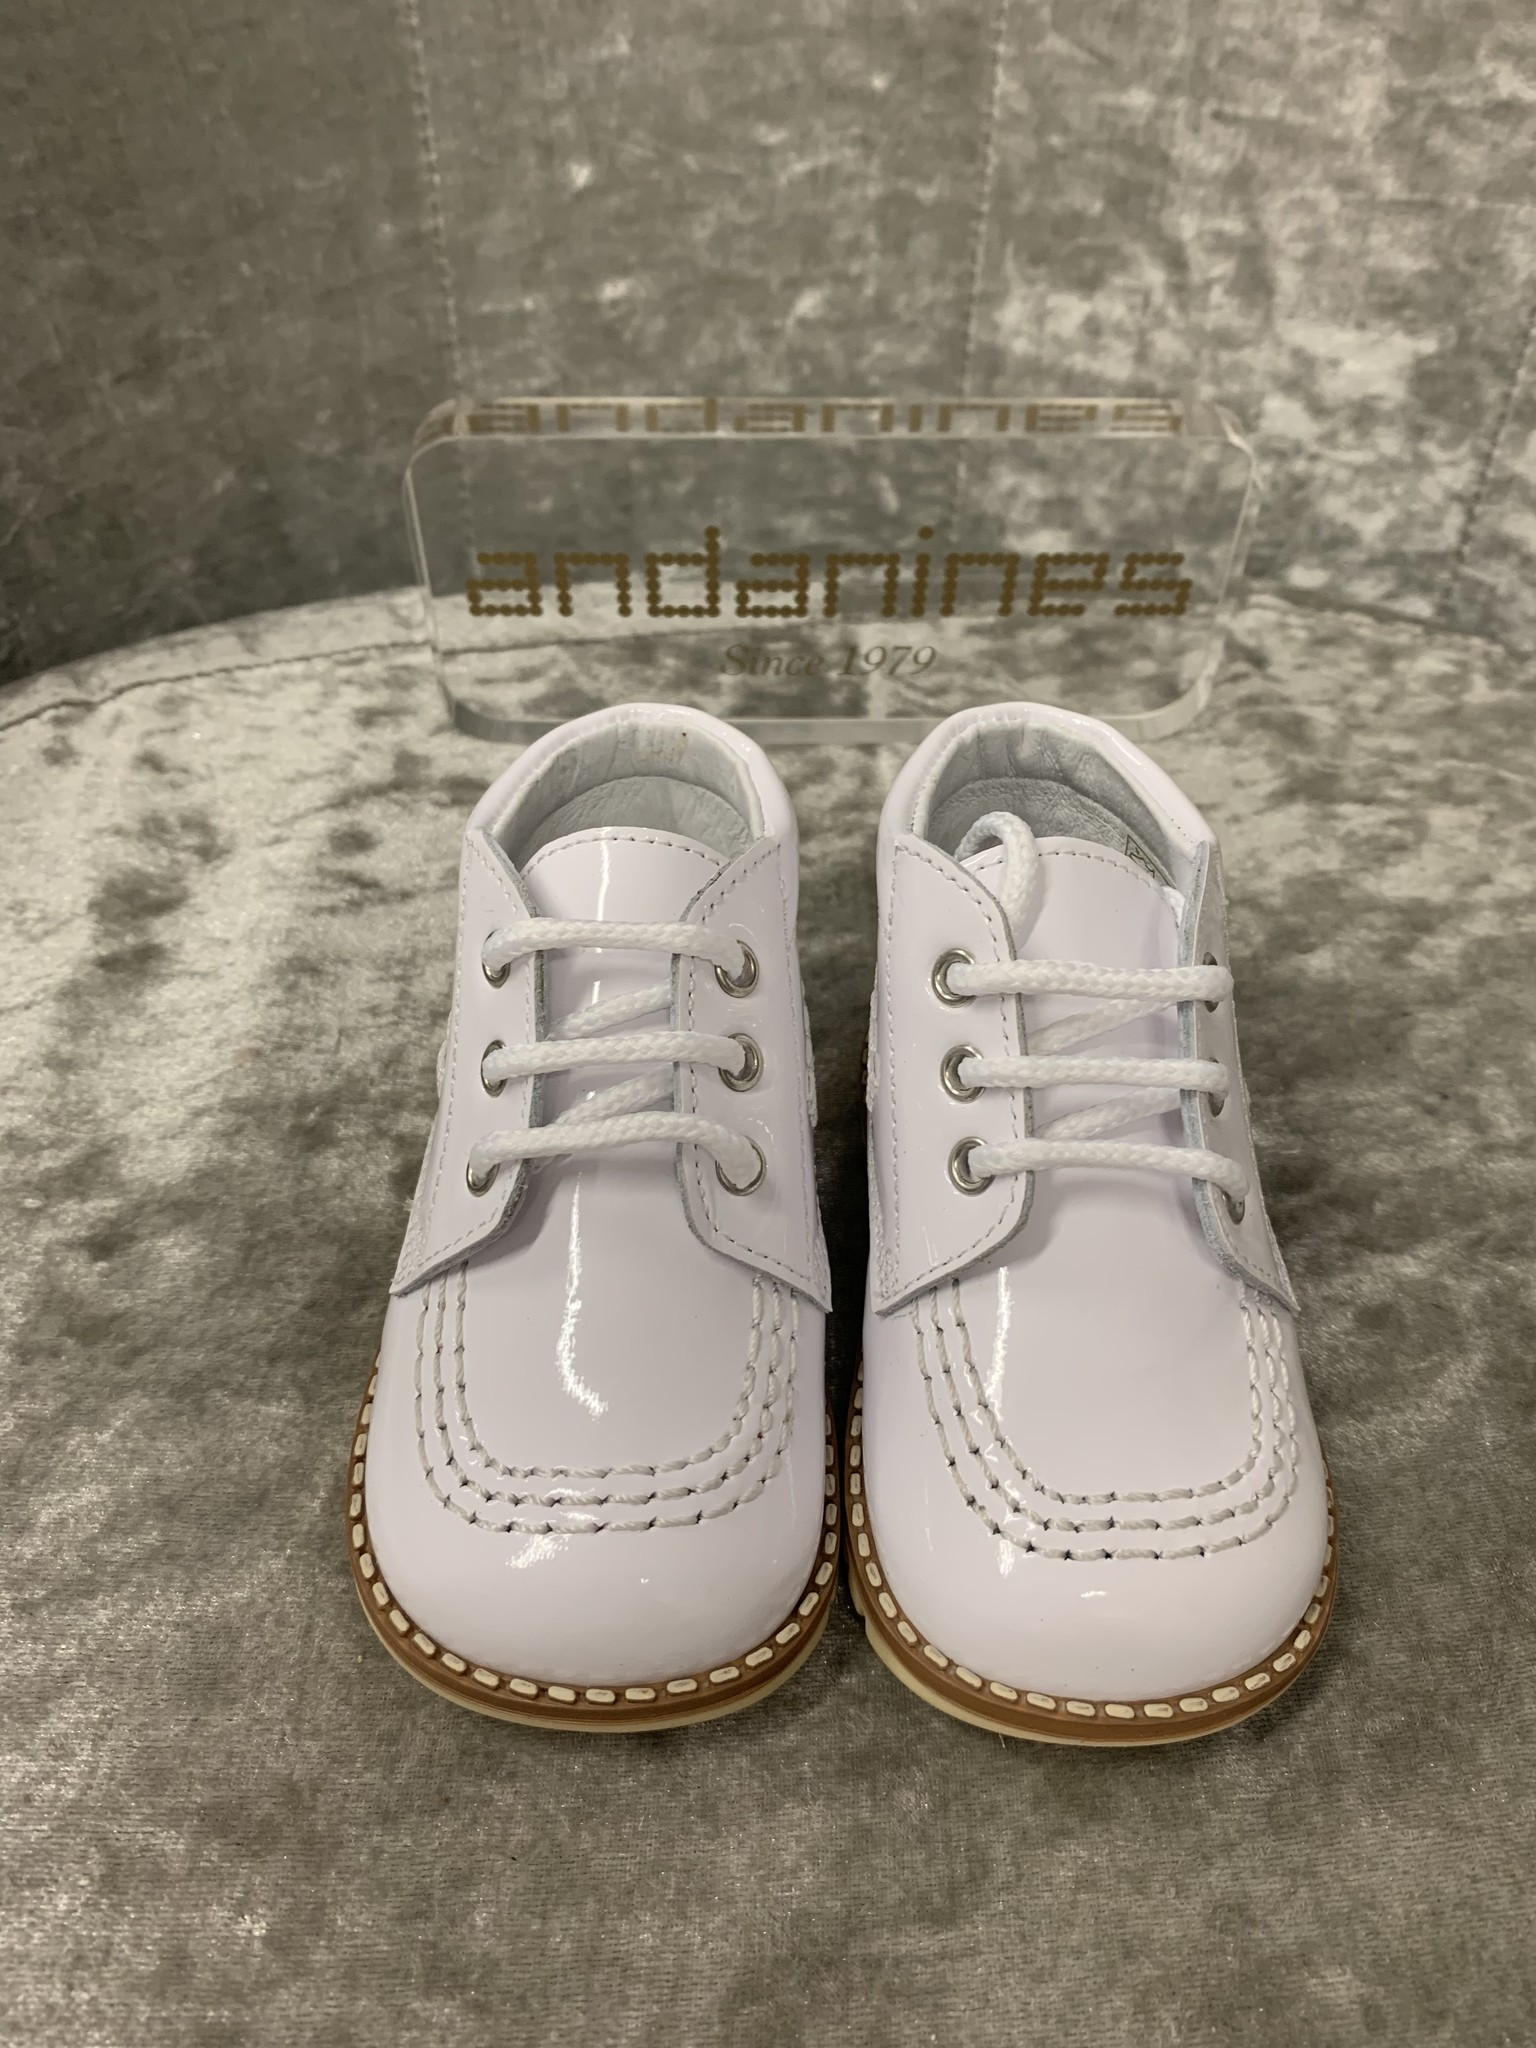 Andanines Andanines White Boots - Size 18